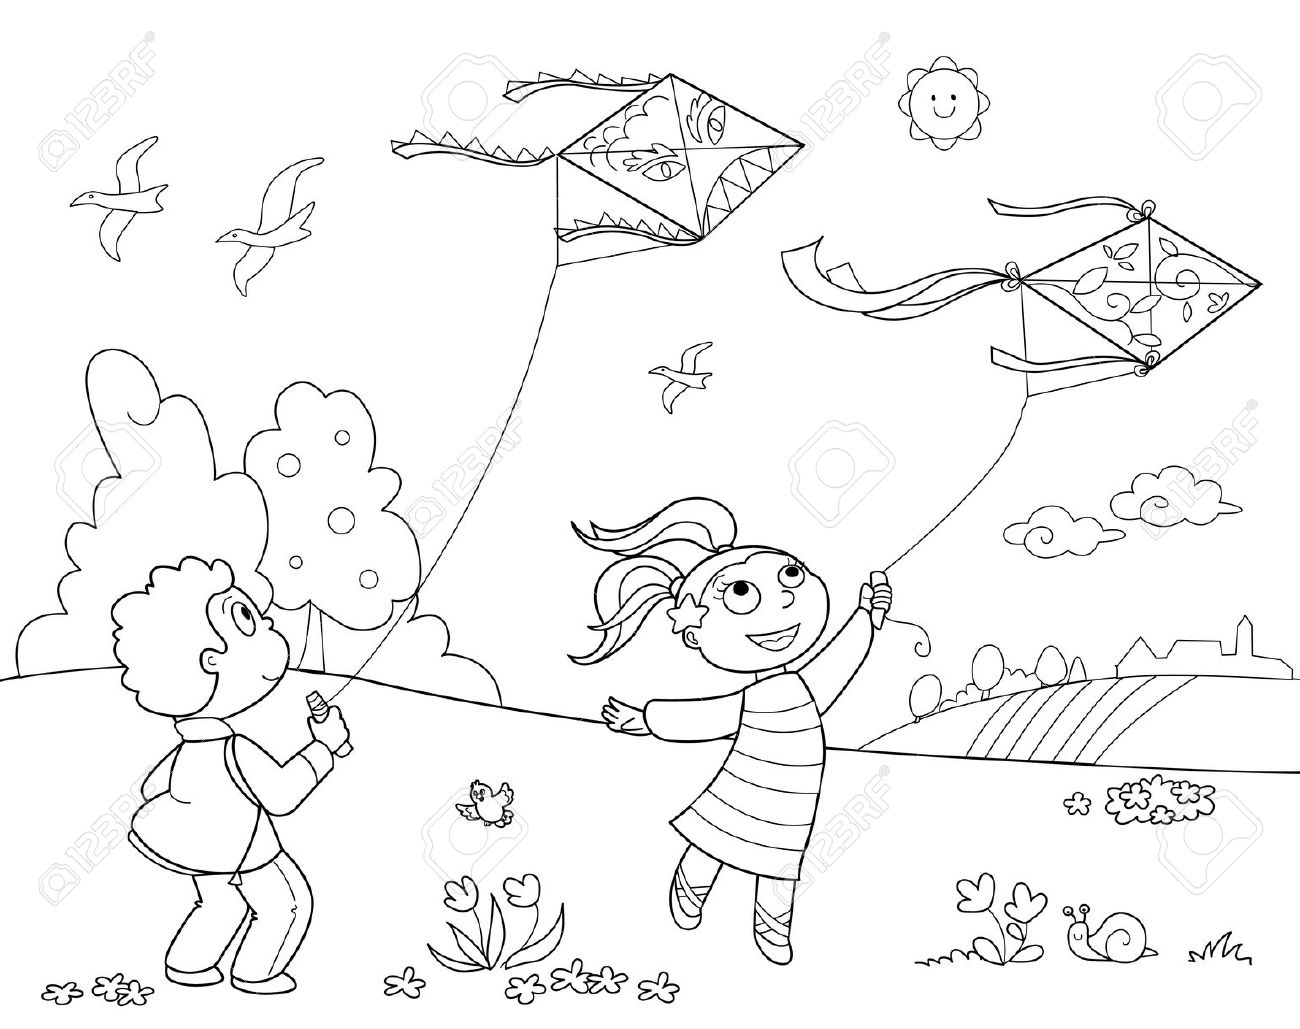 Children playing in the park clipart black and white banner black and white library Children playing in the park clipart black and white 14 » Clipart ... banner black and white library